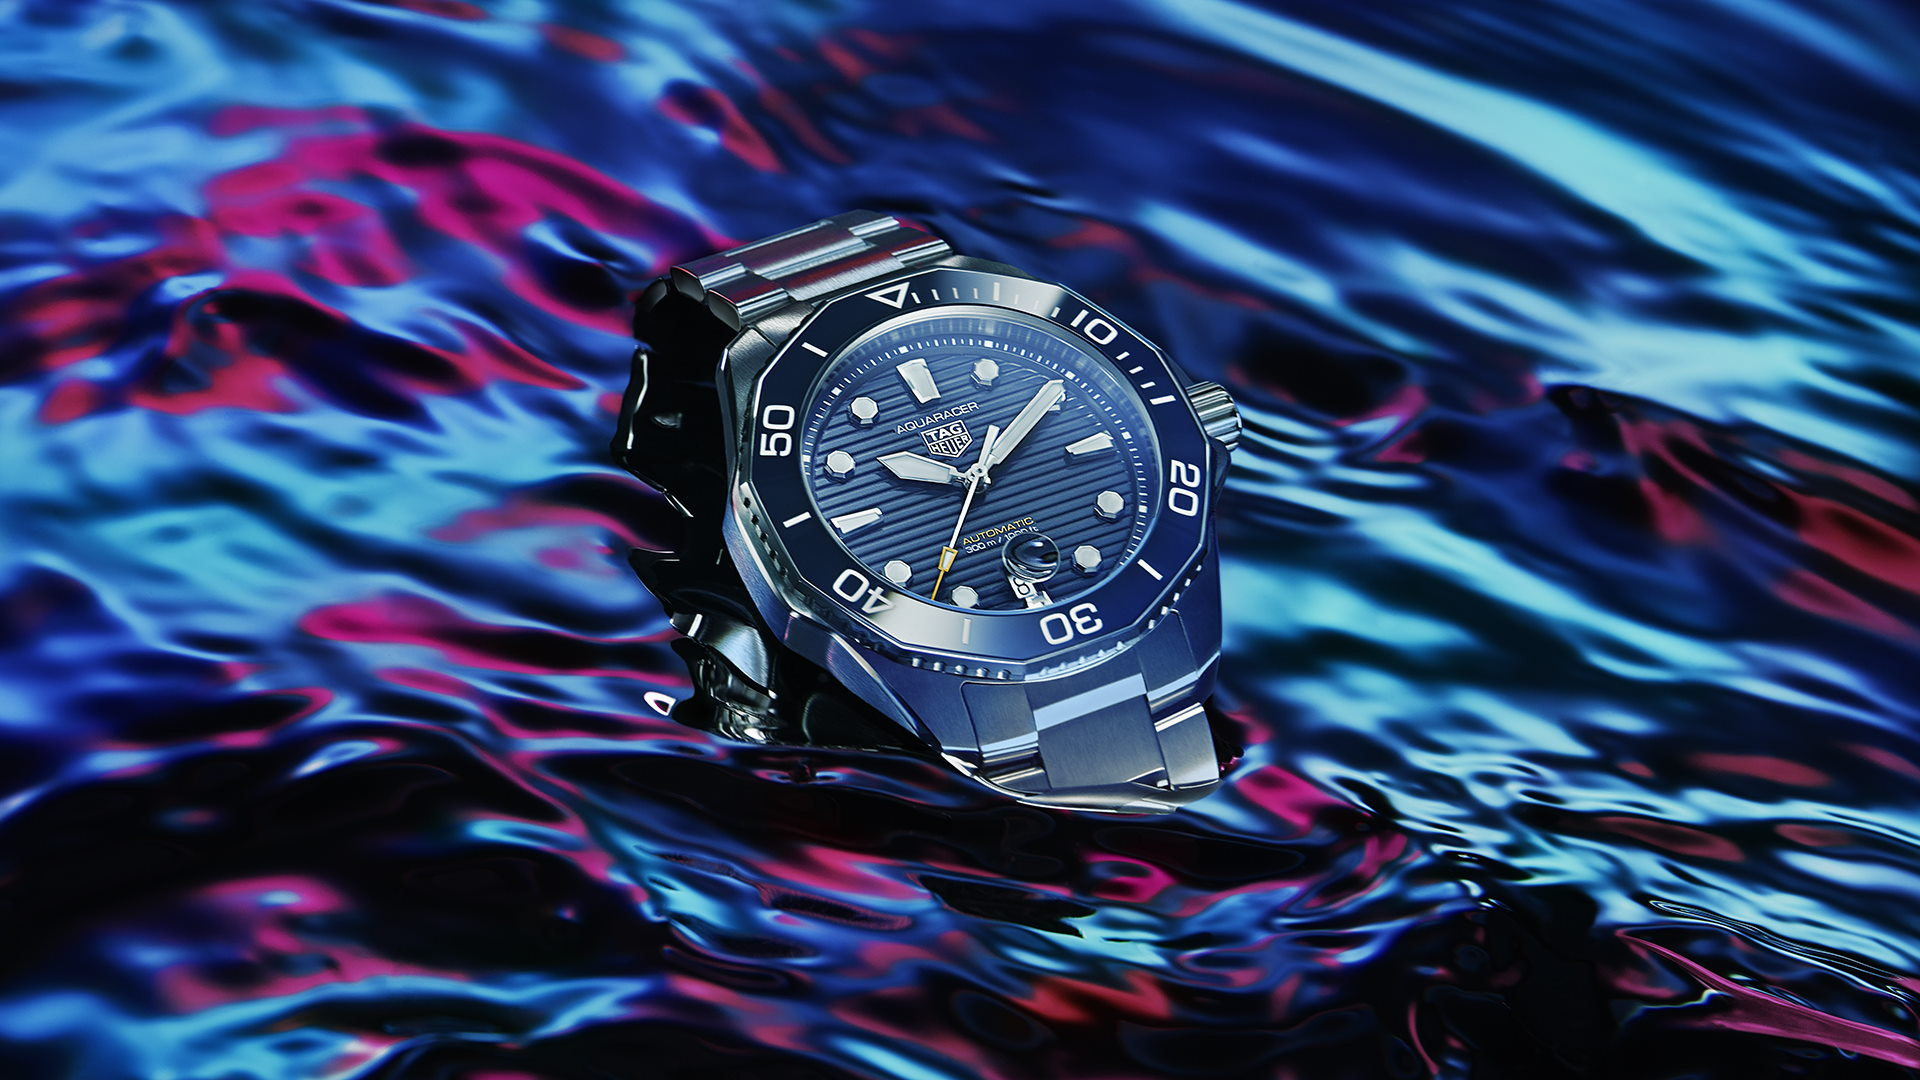 TAG Heuer Makes A Splash With The Return Of The Aquaracer